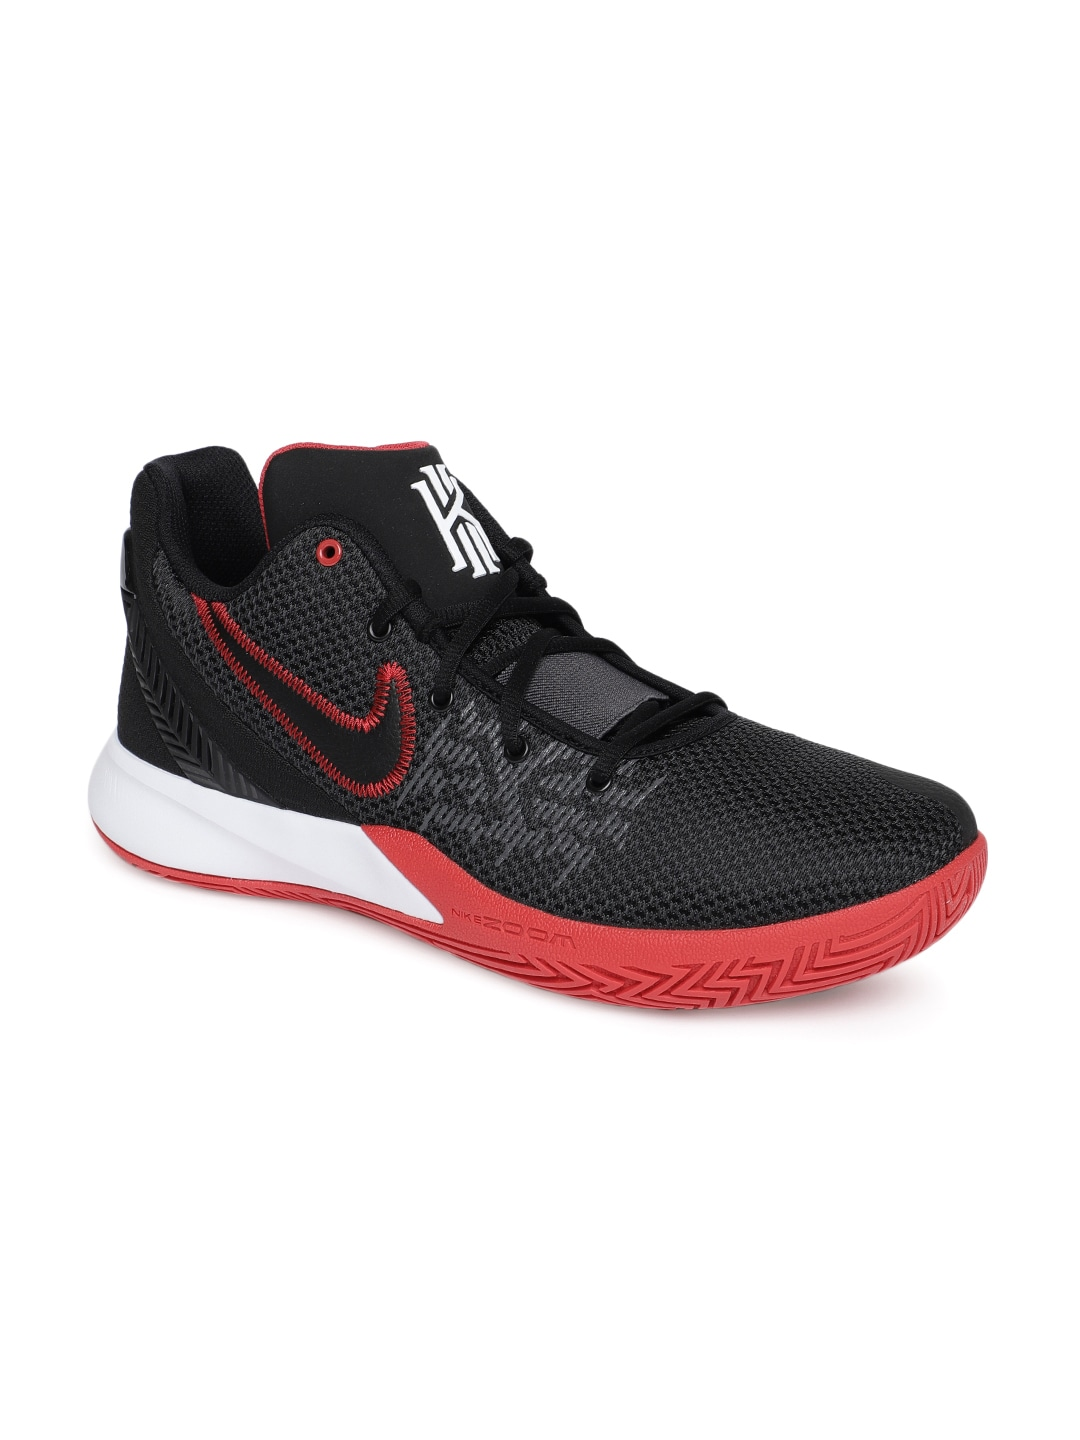 4398a3cb329 Nike Men Black Kyrie Flytrap II Basketball Shoes